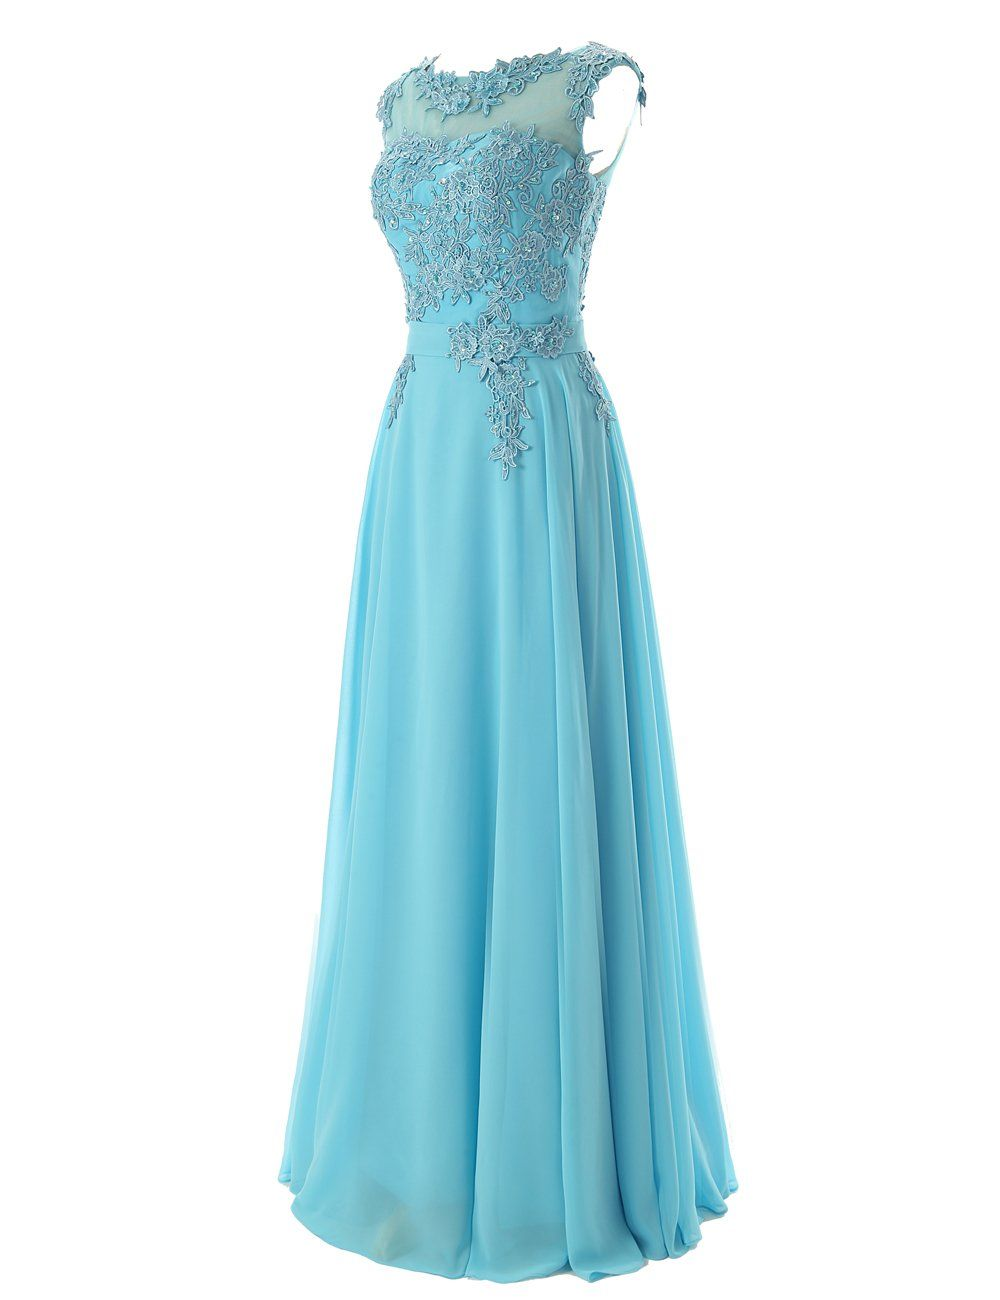 Diyouth long bridesmaid chiffon prom dresses scoop evening gowns